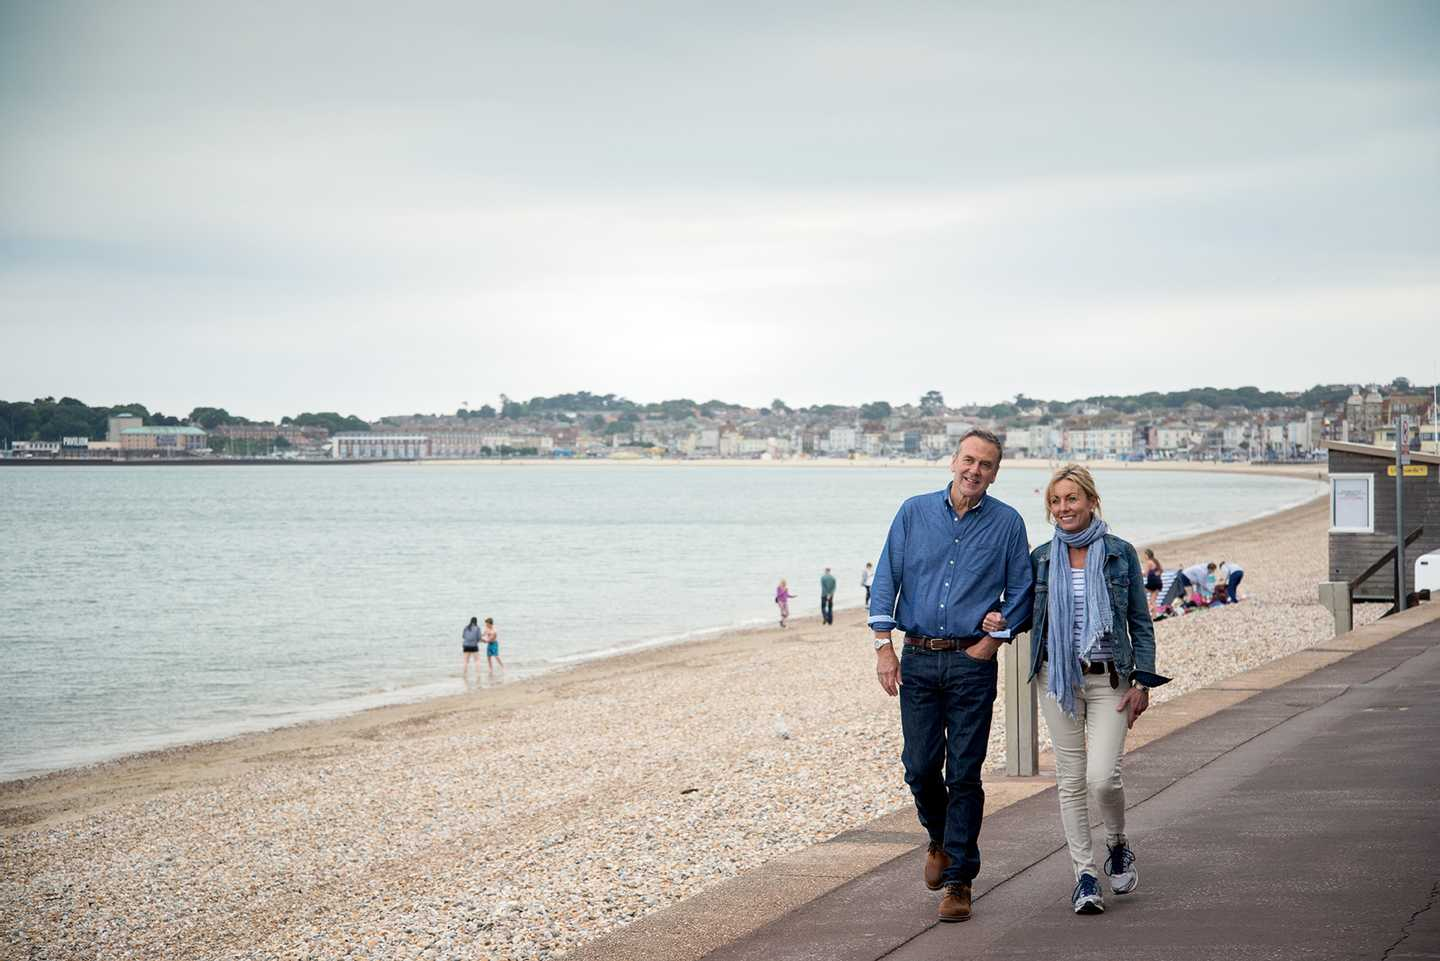 A couple walking along the promenade of a shingle beach, arm in arm with the sea and cloudy skies in the background